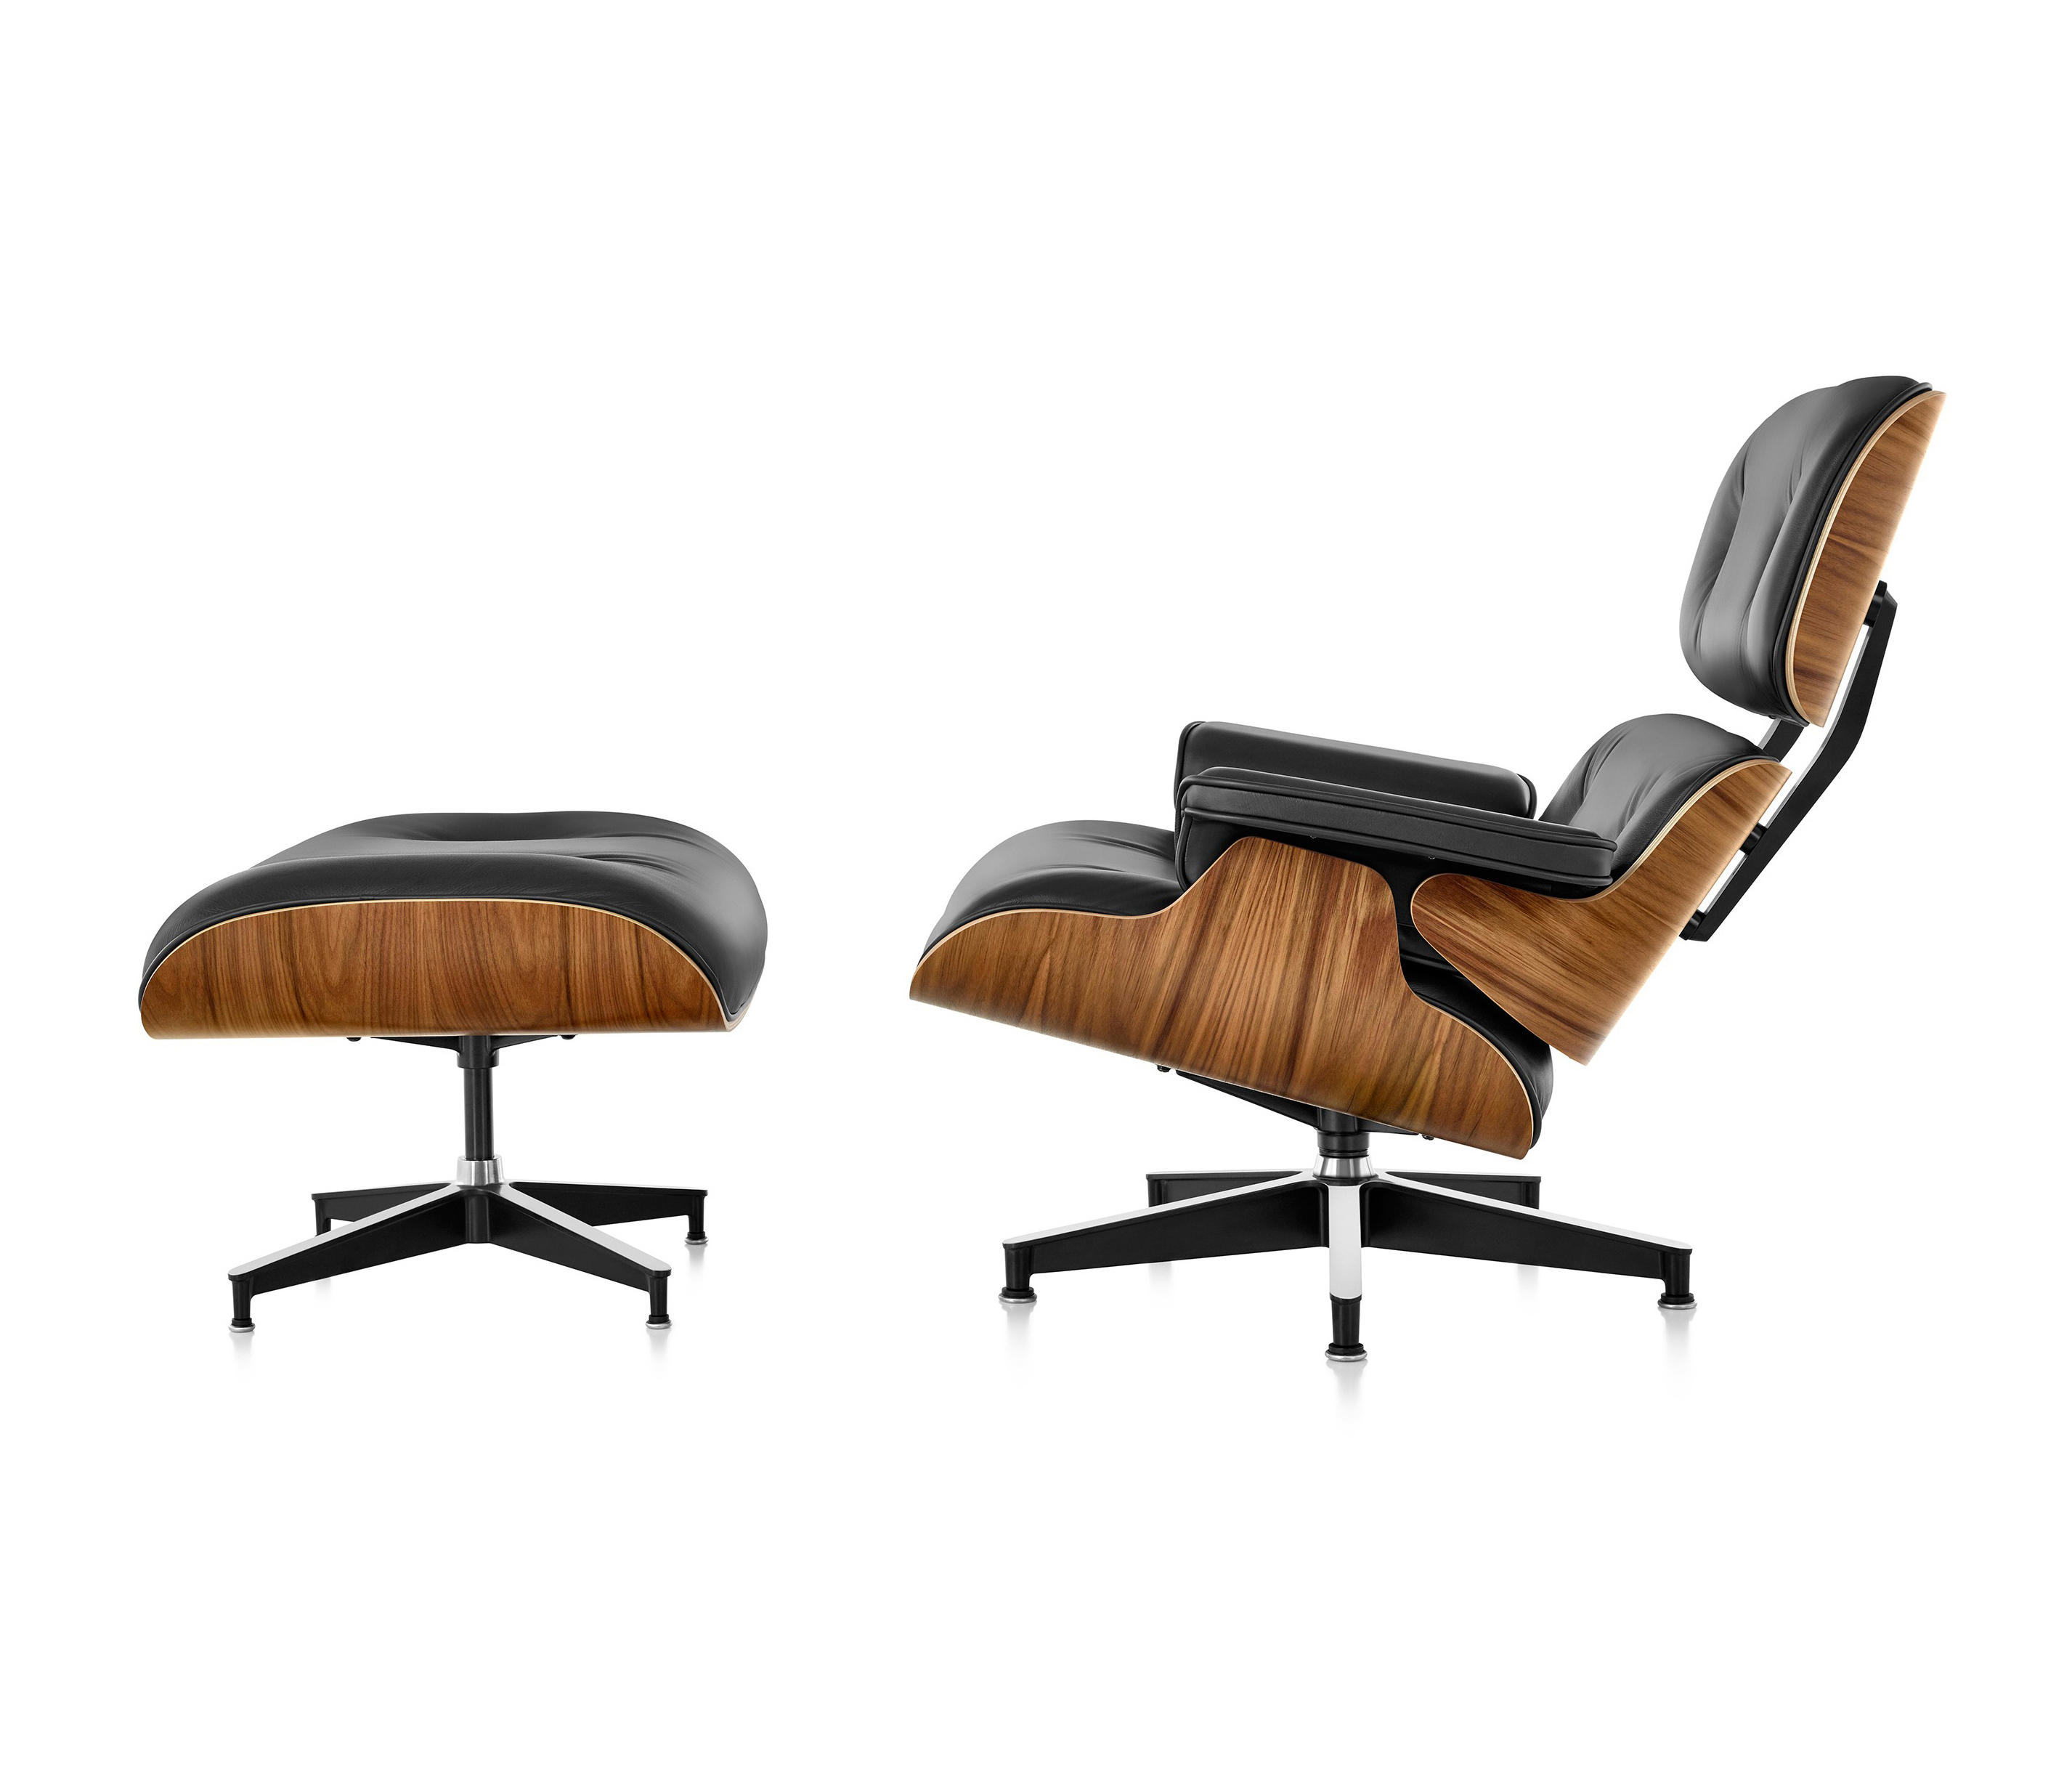 eames lounge chair and ottoman lounge chairs from herman miller architonic. Black Bedroom Furniture Sets. Home Design Ideas